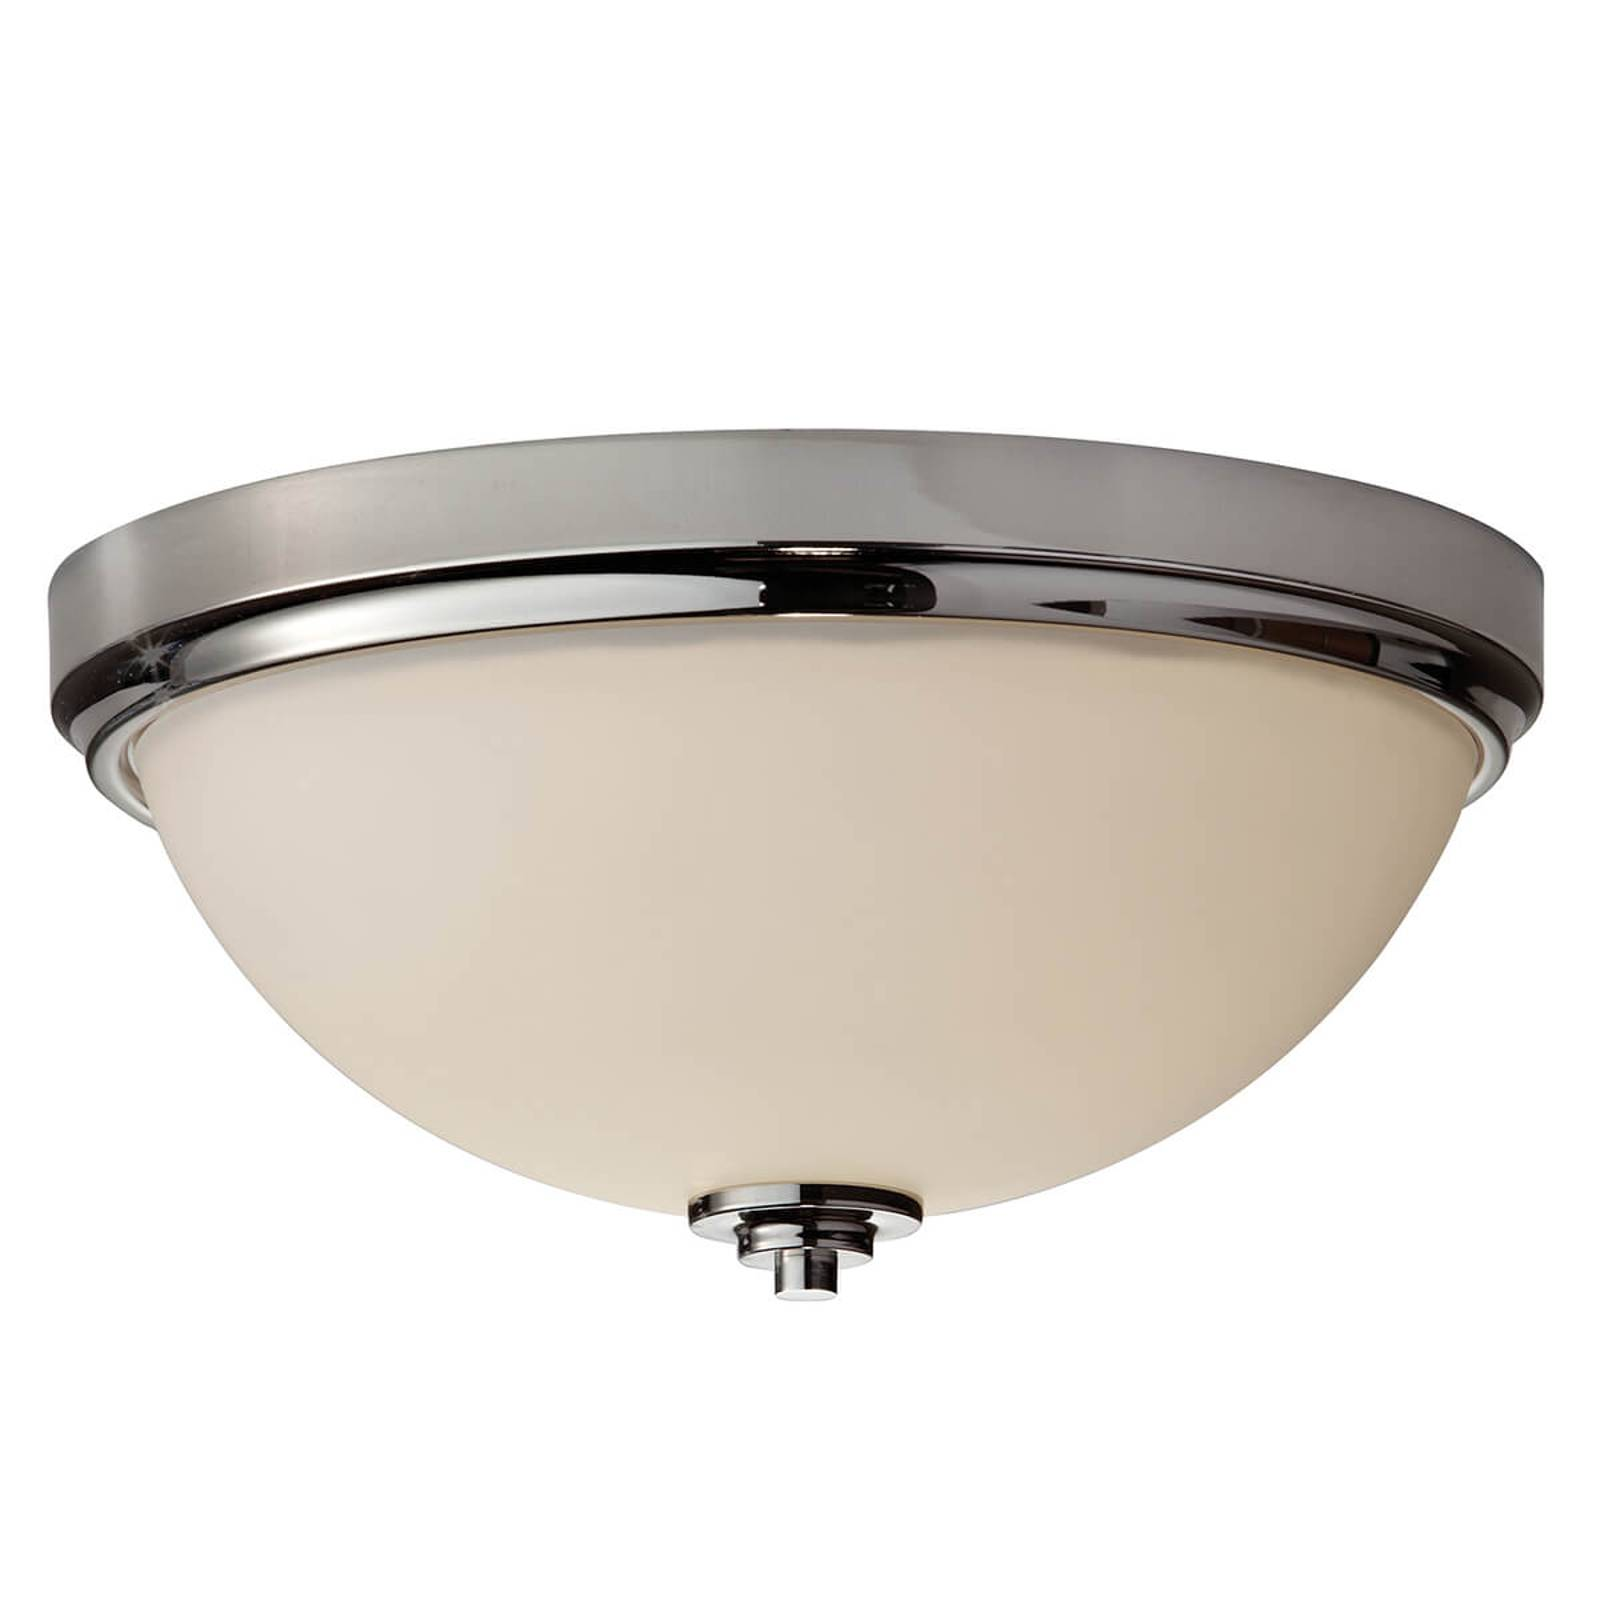 Special ceiling light Malibu for the bathroom from FEISS